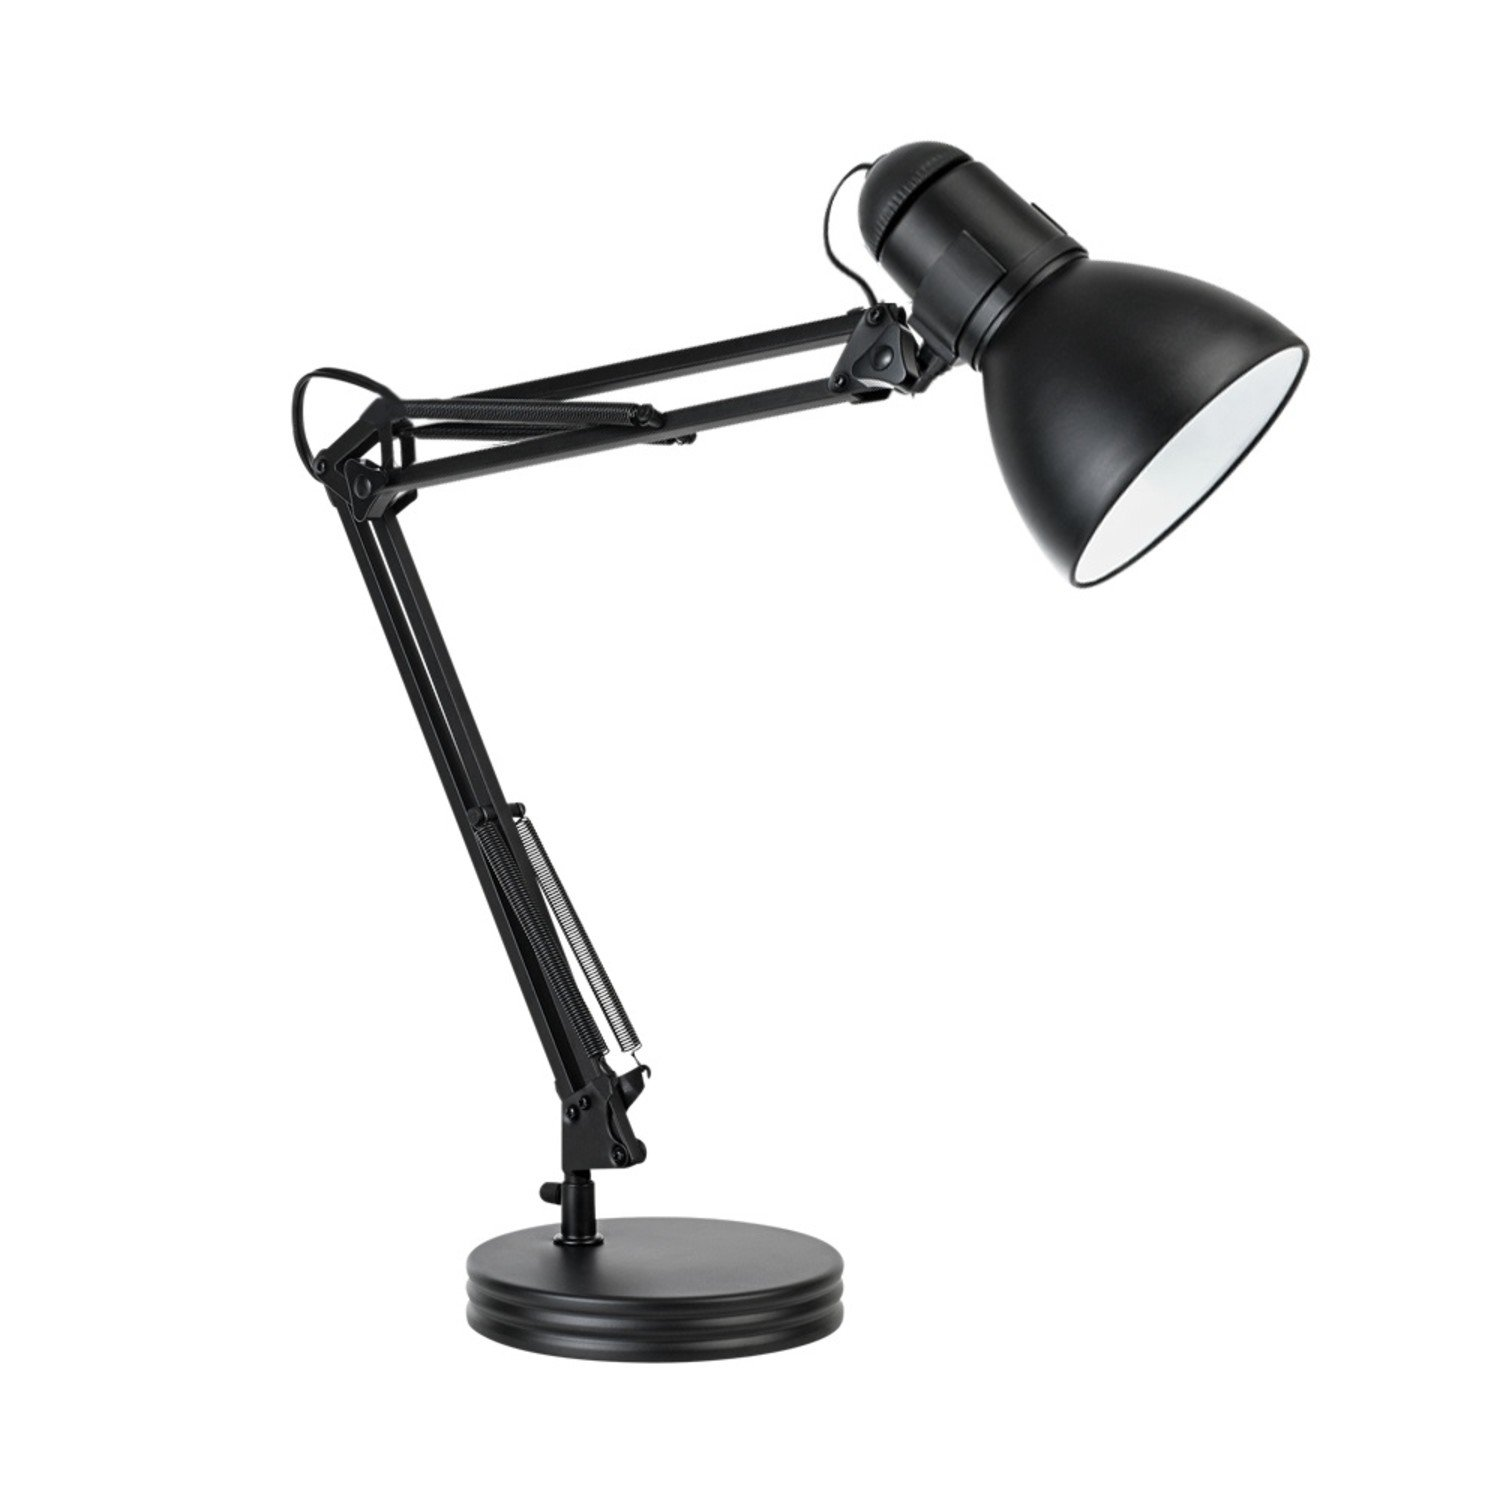 Globe Electric 35'' Heavy Base Architect Spring Balanced Swing Arm Desk Lamp, Black Finish, 5698601 by Globe Electric